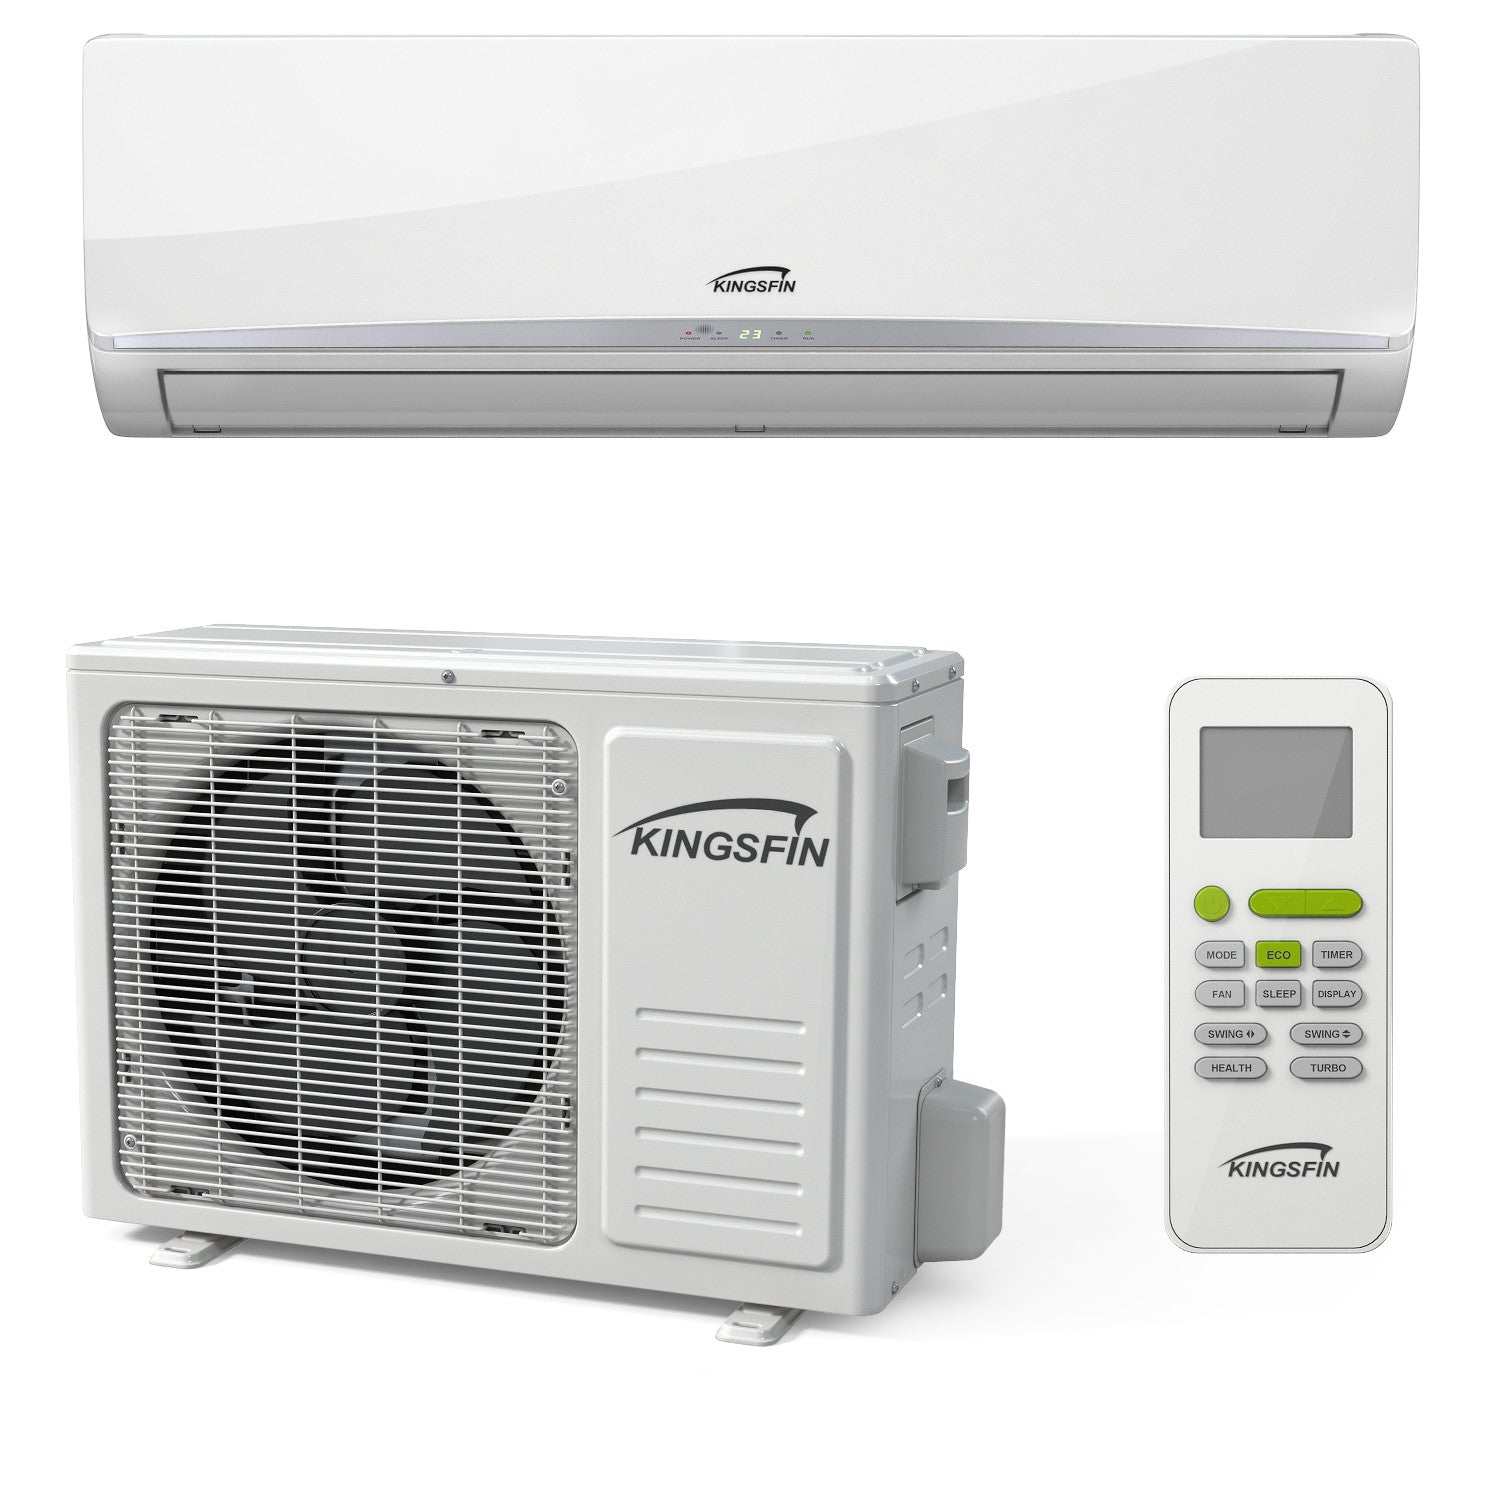 kingsfin mini split ductless ac air conditioner and heat pump 15/18